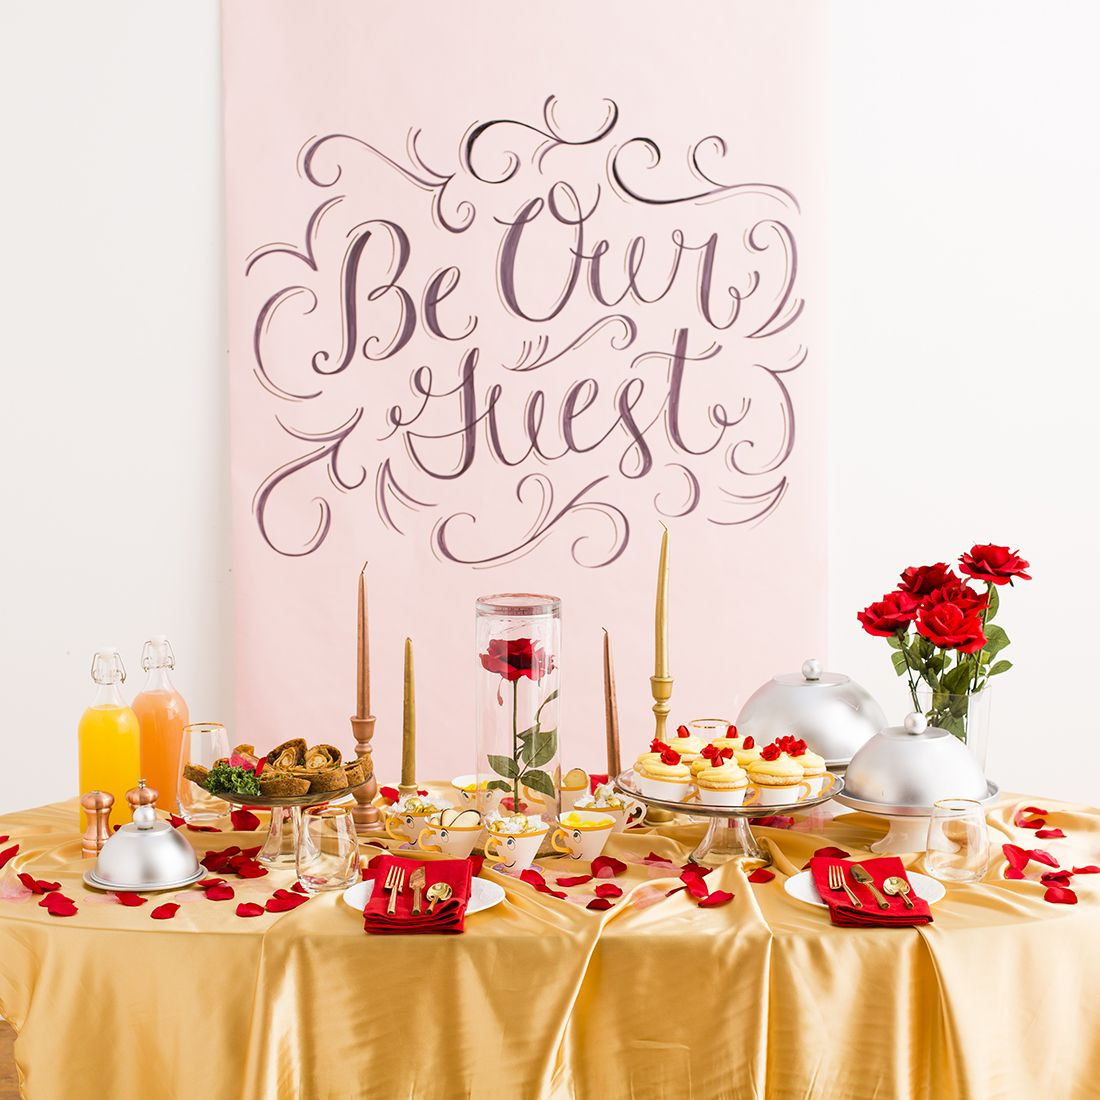 Save This For A Beauty And The Beast-inspired Dinner Party